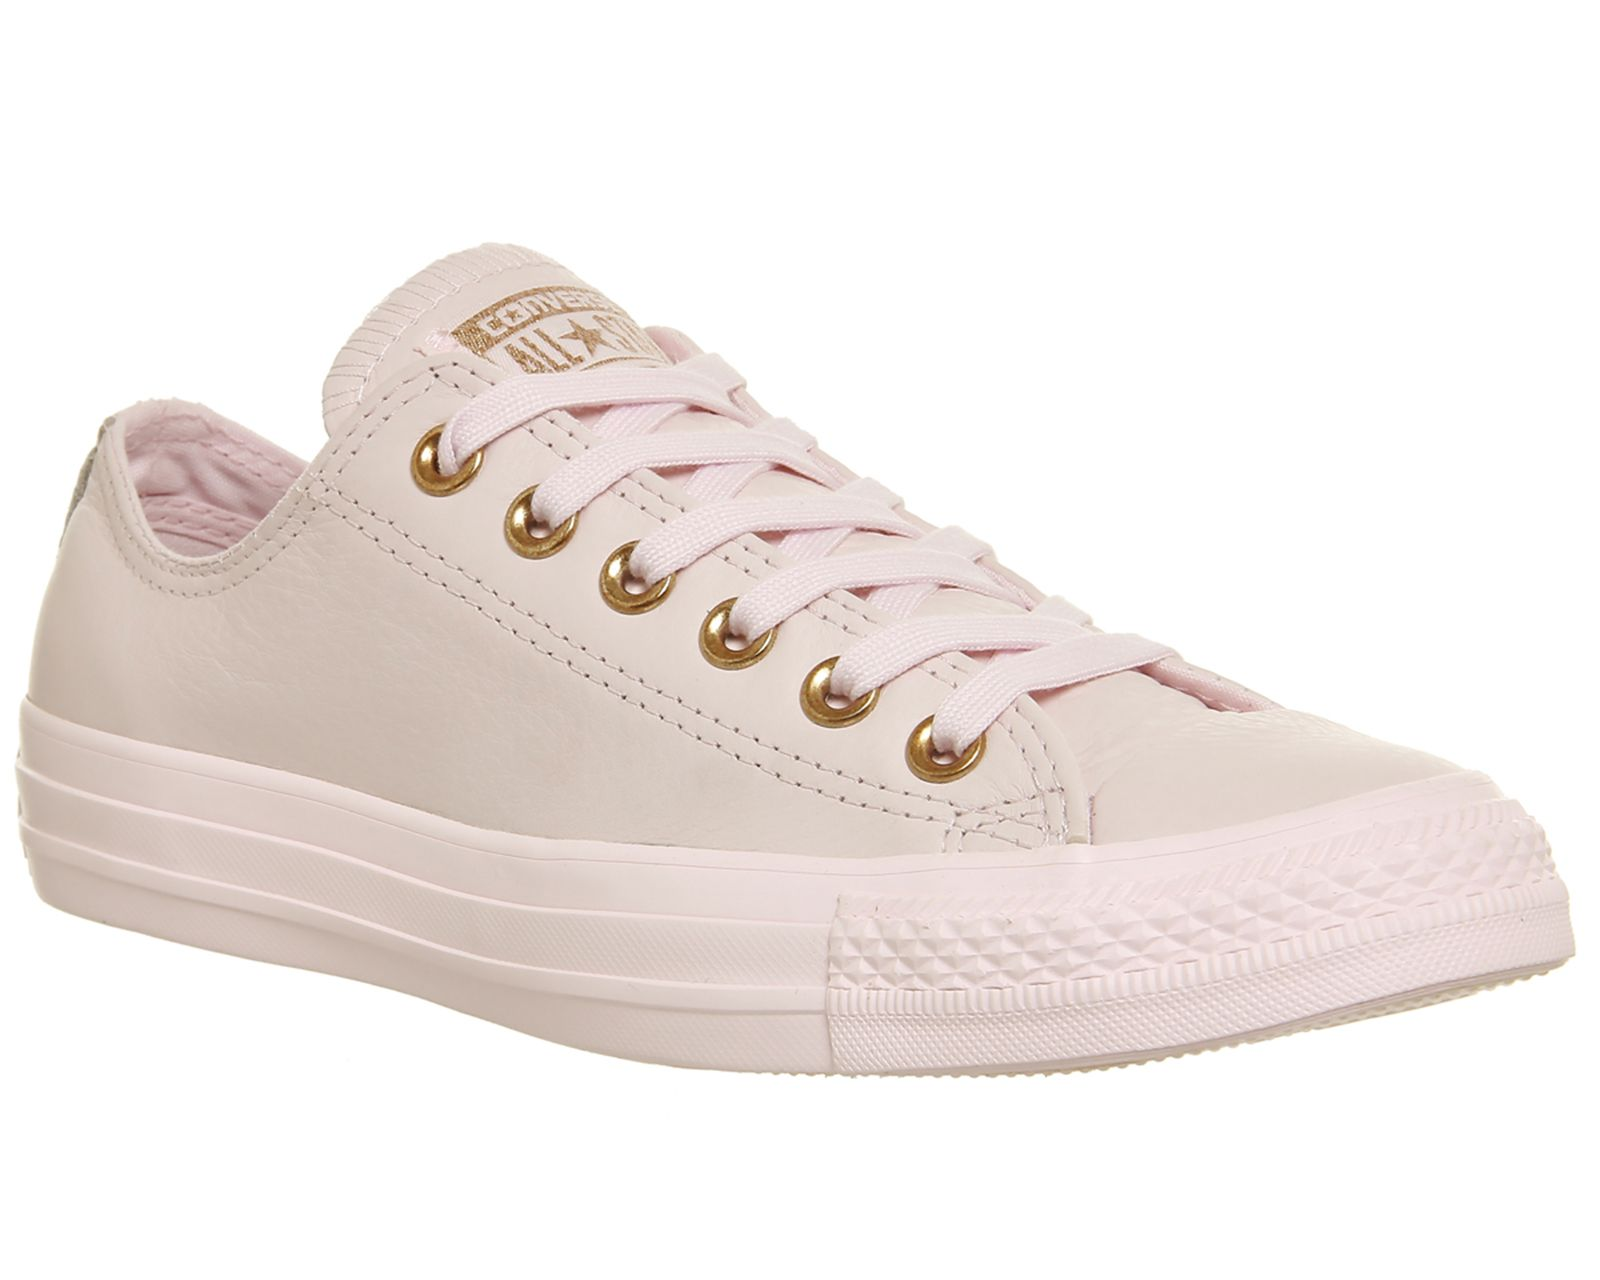 All Star Low Leather | Converse rose gold, Converse all star ...